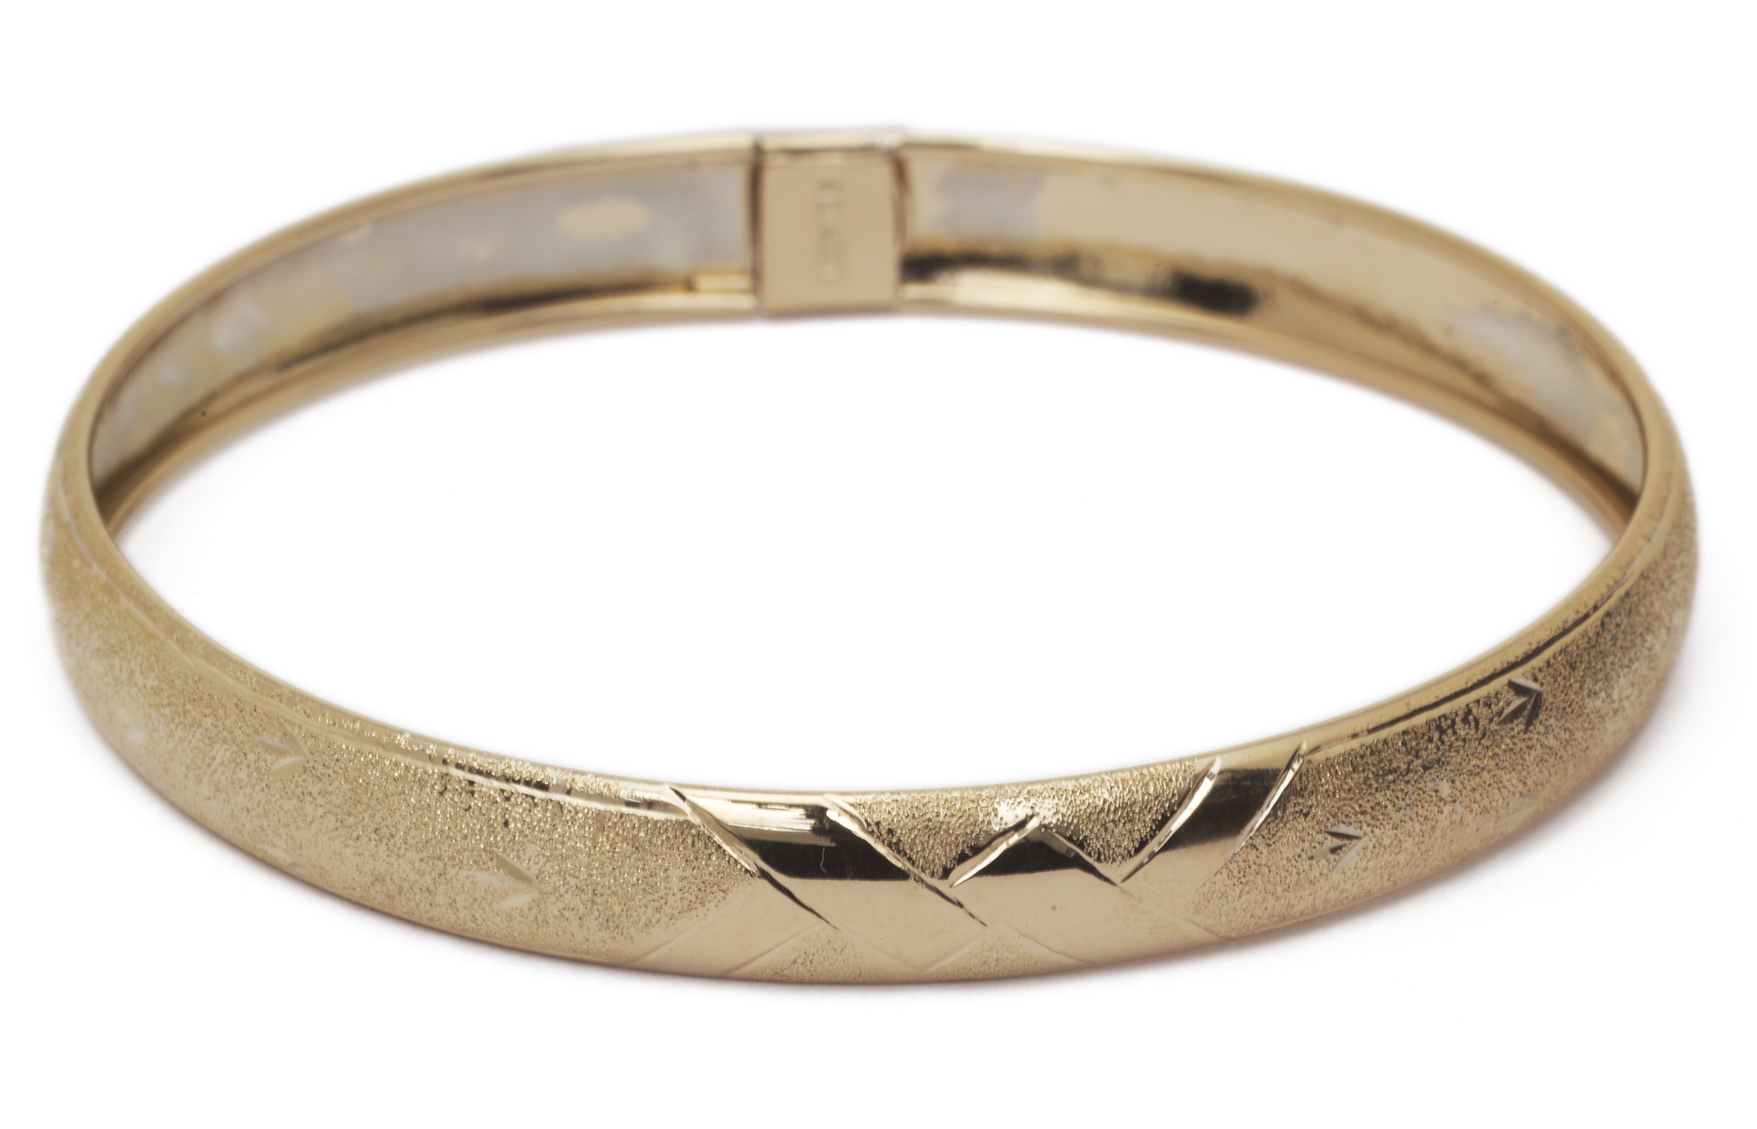 10k Yellow Gold bangle bracelet Flexible Round with Diamond Cut Design (0.3 ) by Glad Gold